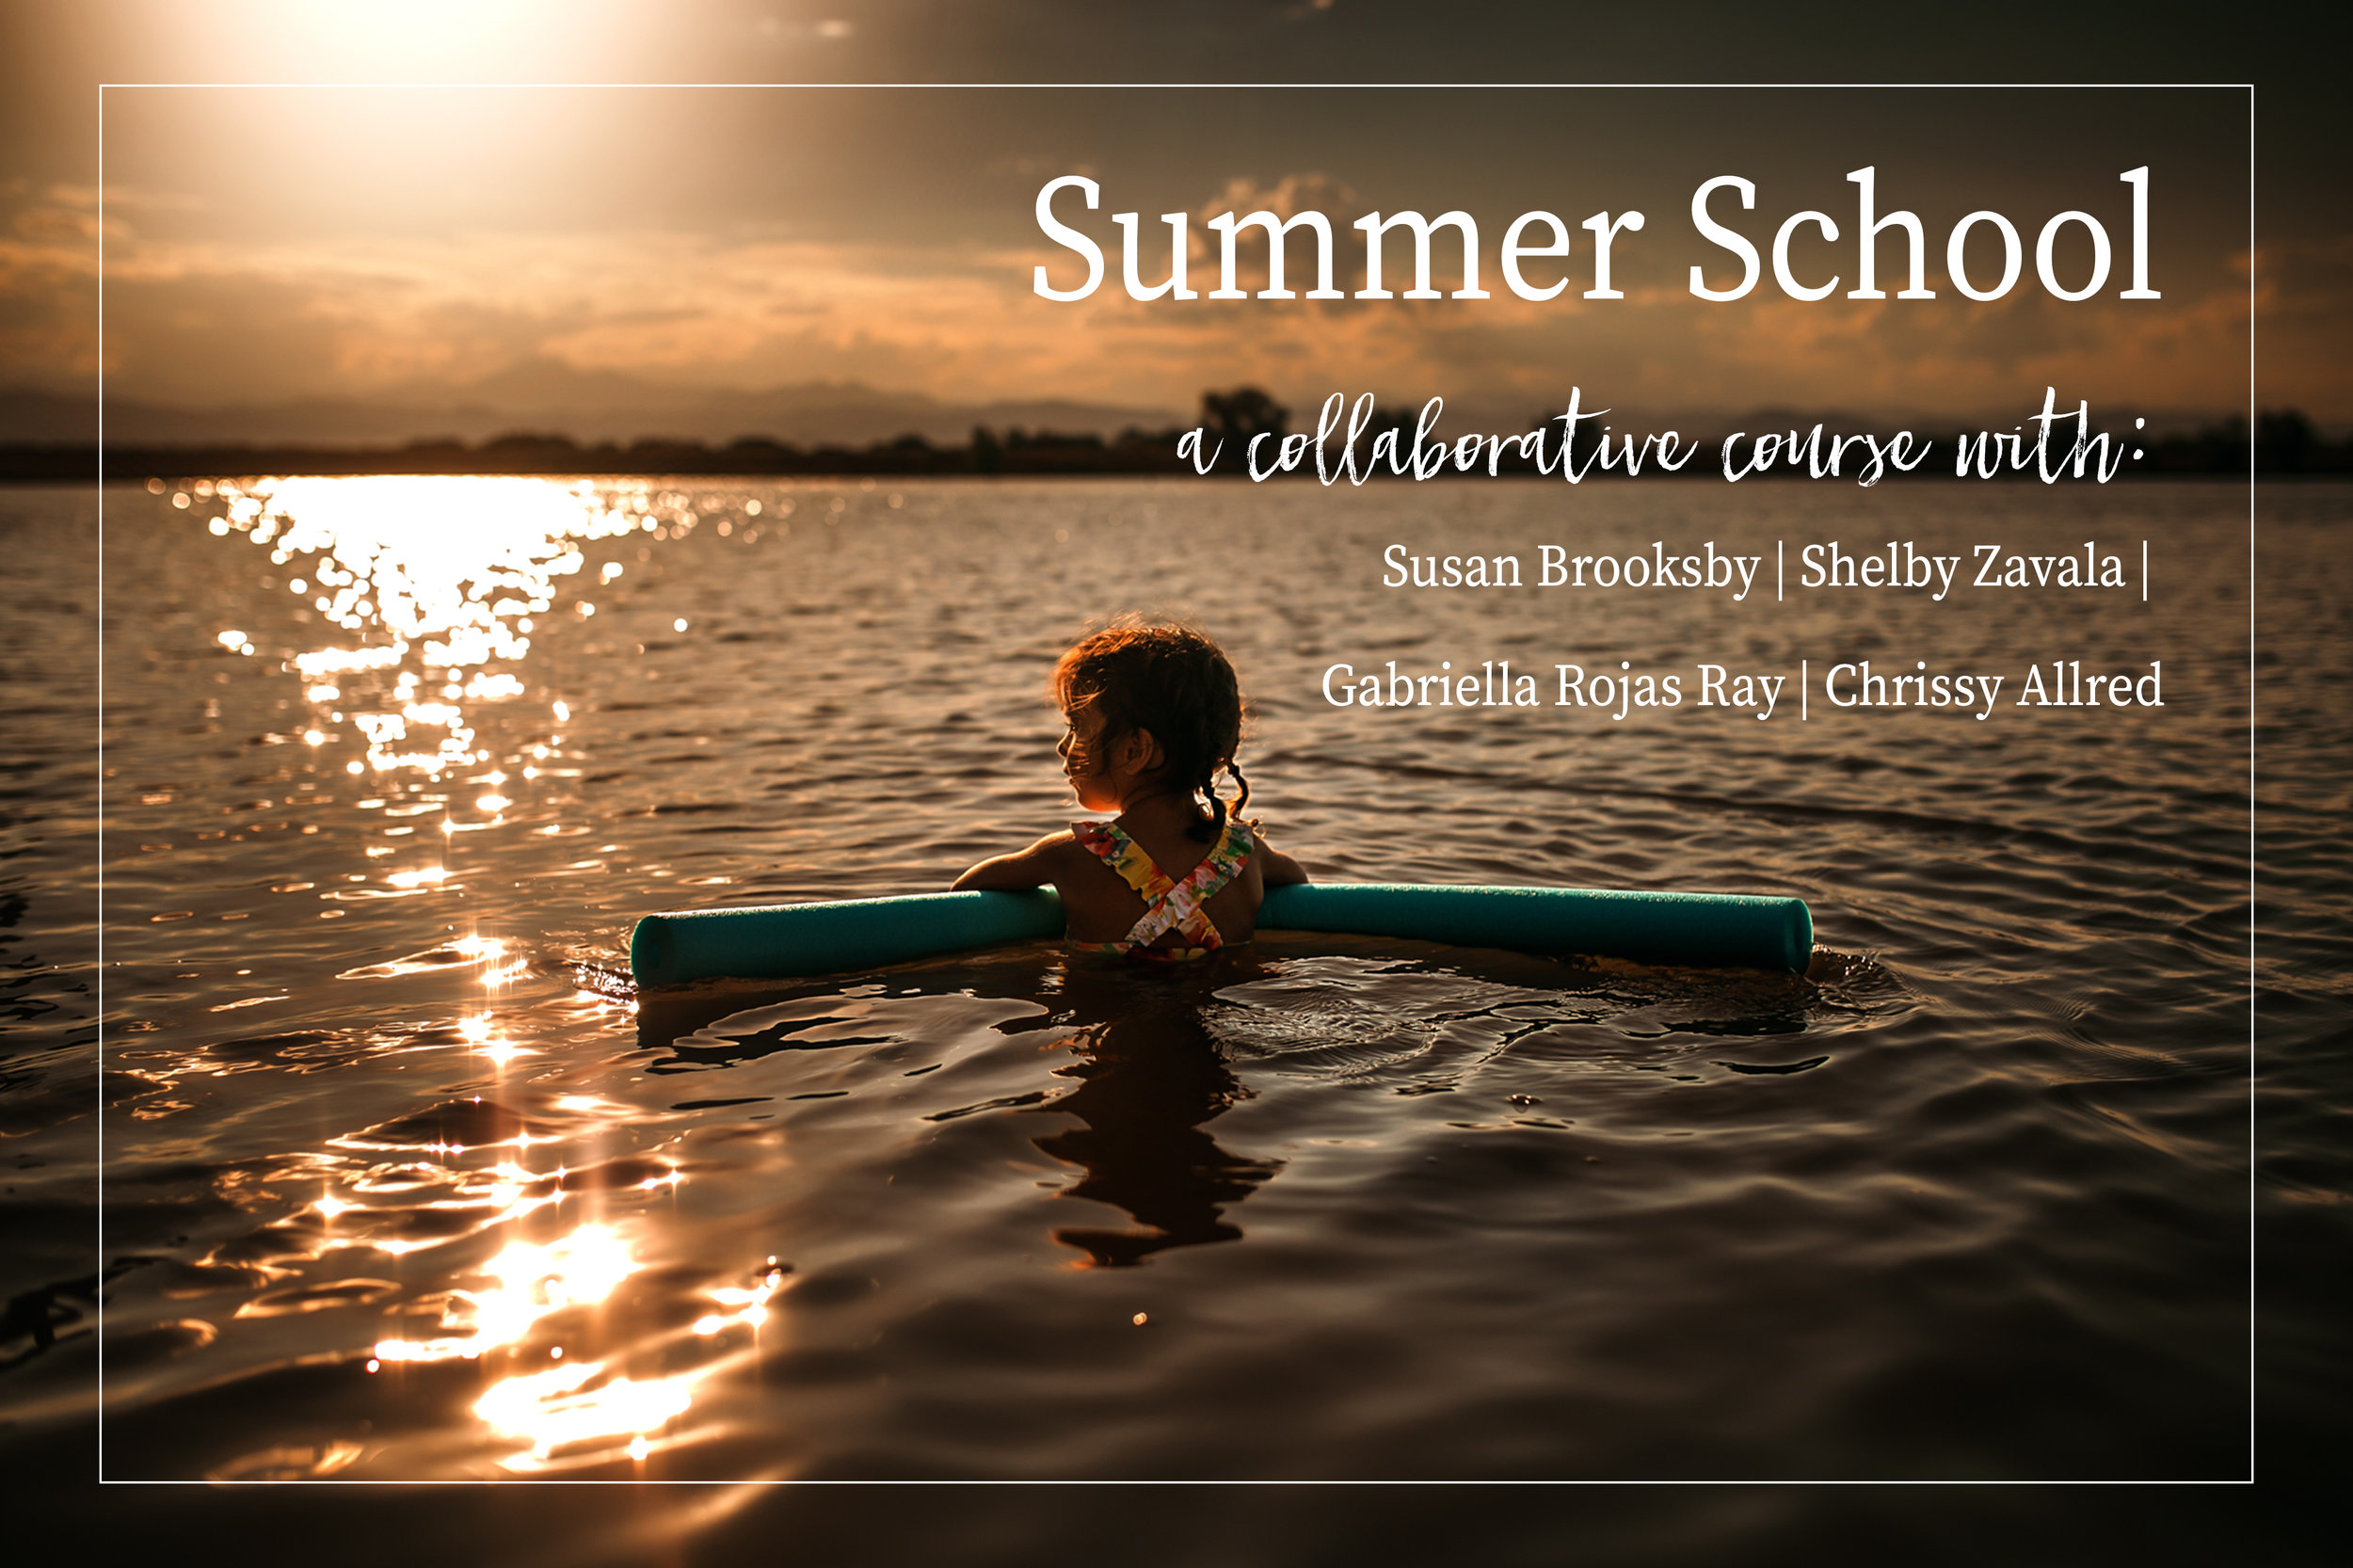 Summer School Collab - with Susan Brooksby | Shelby Zavala | Gabriella Rojas Ray | & Chrissy Allred